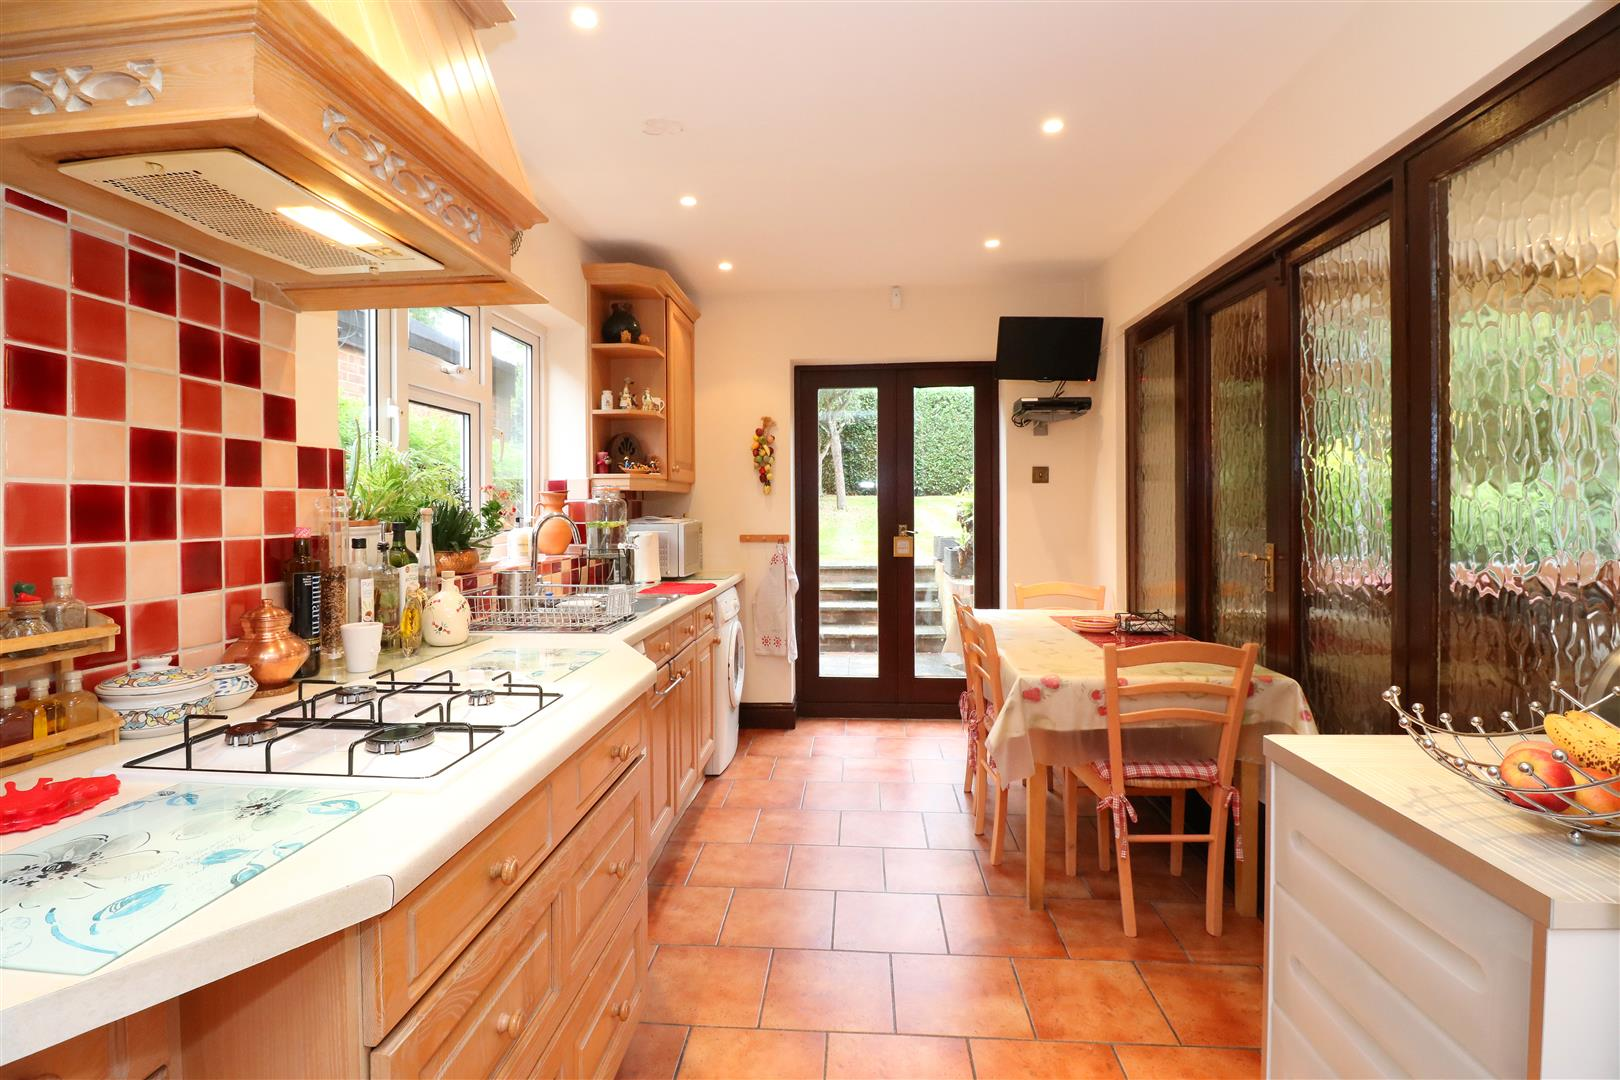 4 bed House for sale in Links Drive, Radlett - (Property Image 3)